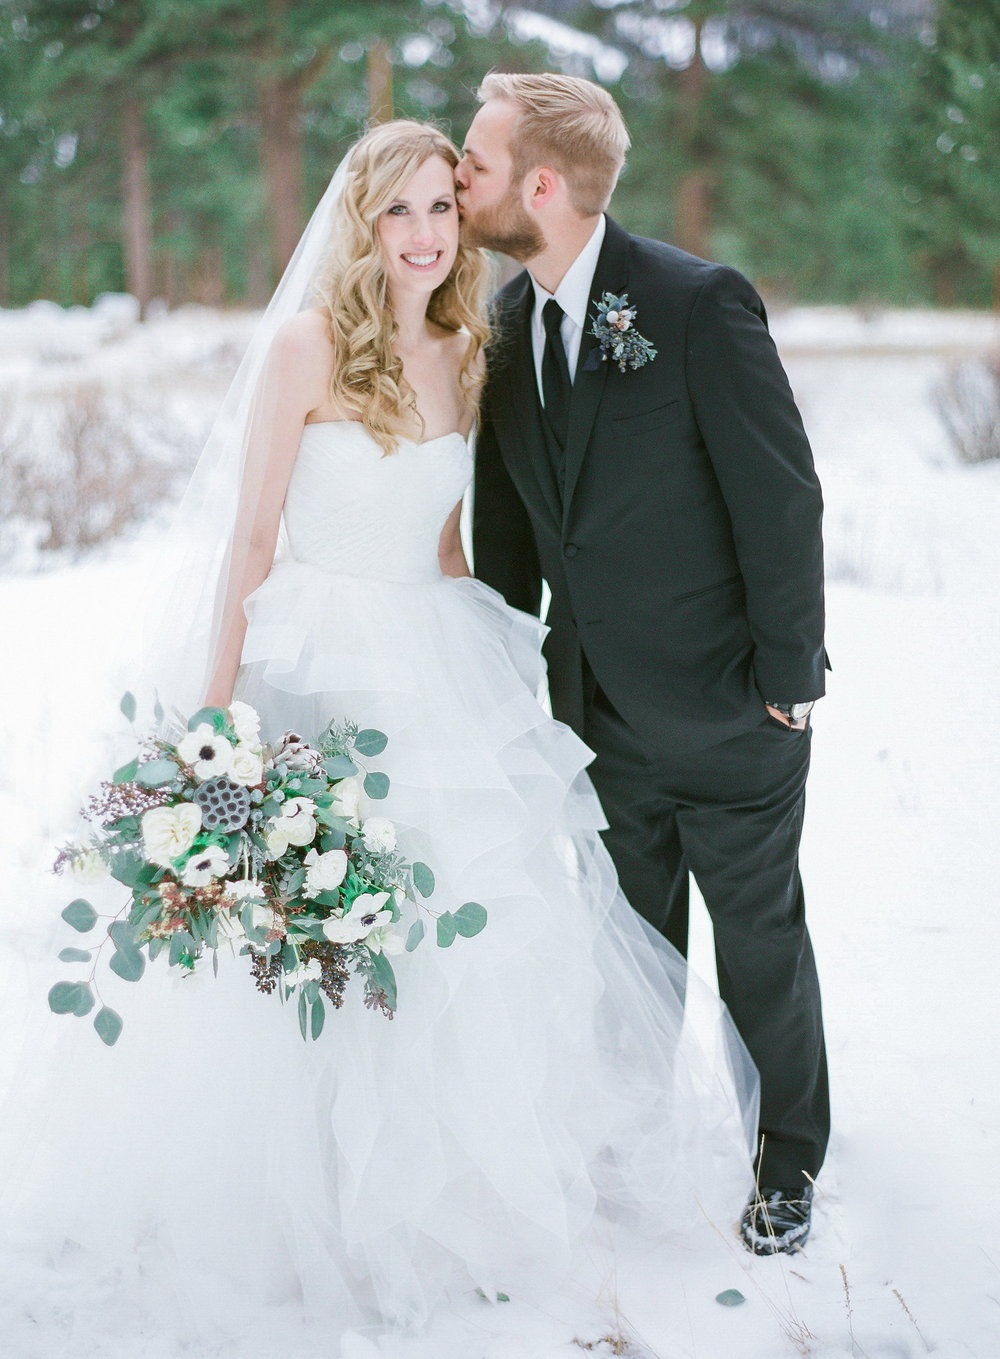 Kendall | January 2015 | Della Terra Mountain Chateau | Estes Park, Colorado |  Shannon Von Eschen Photography